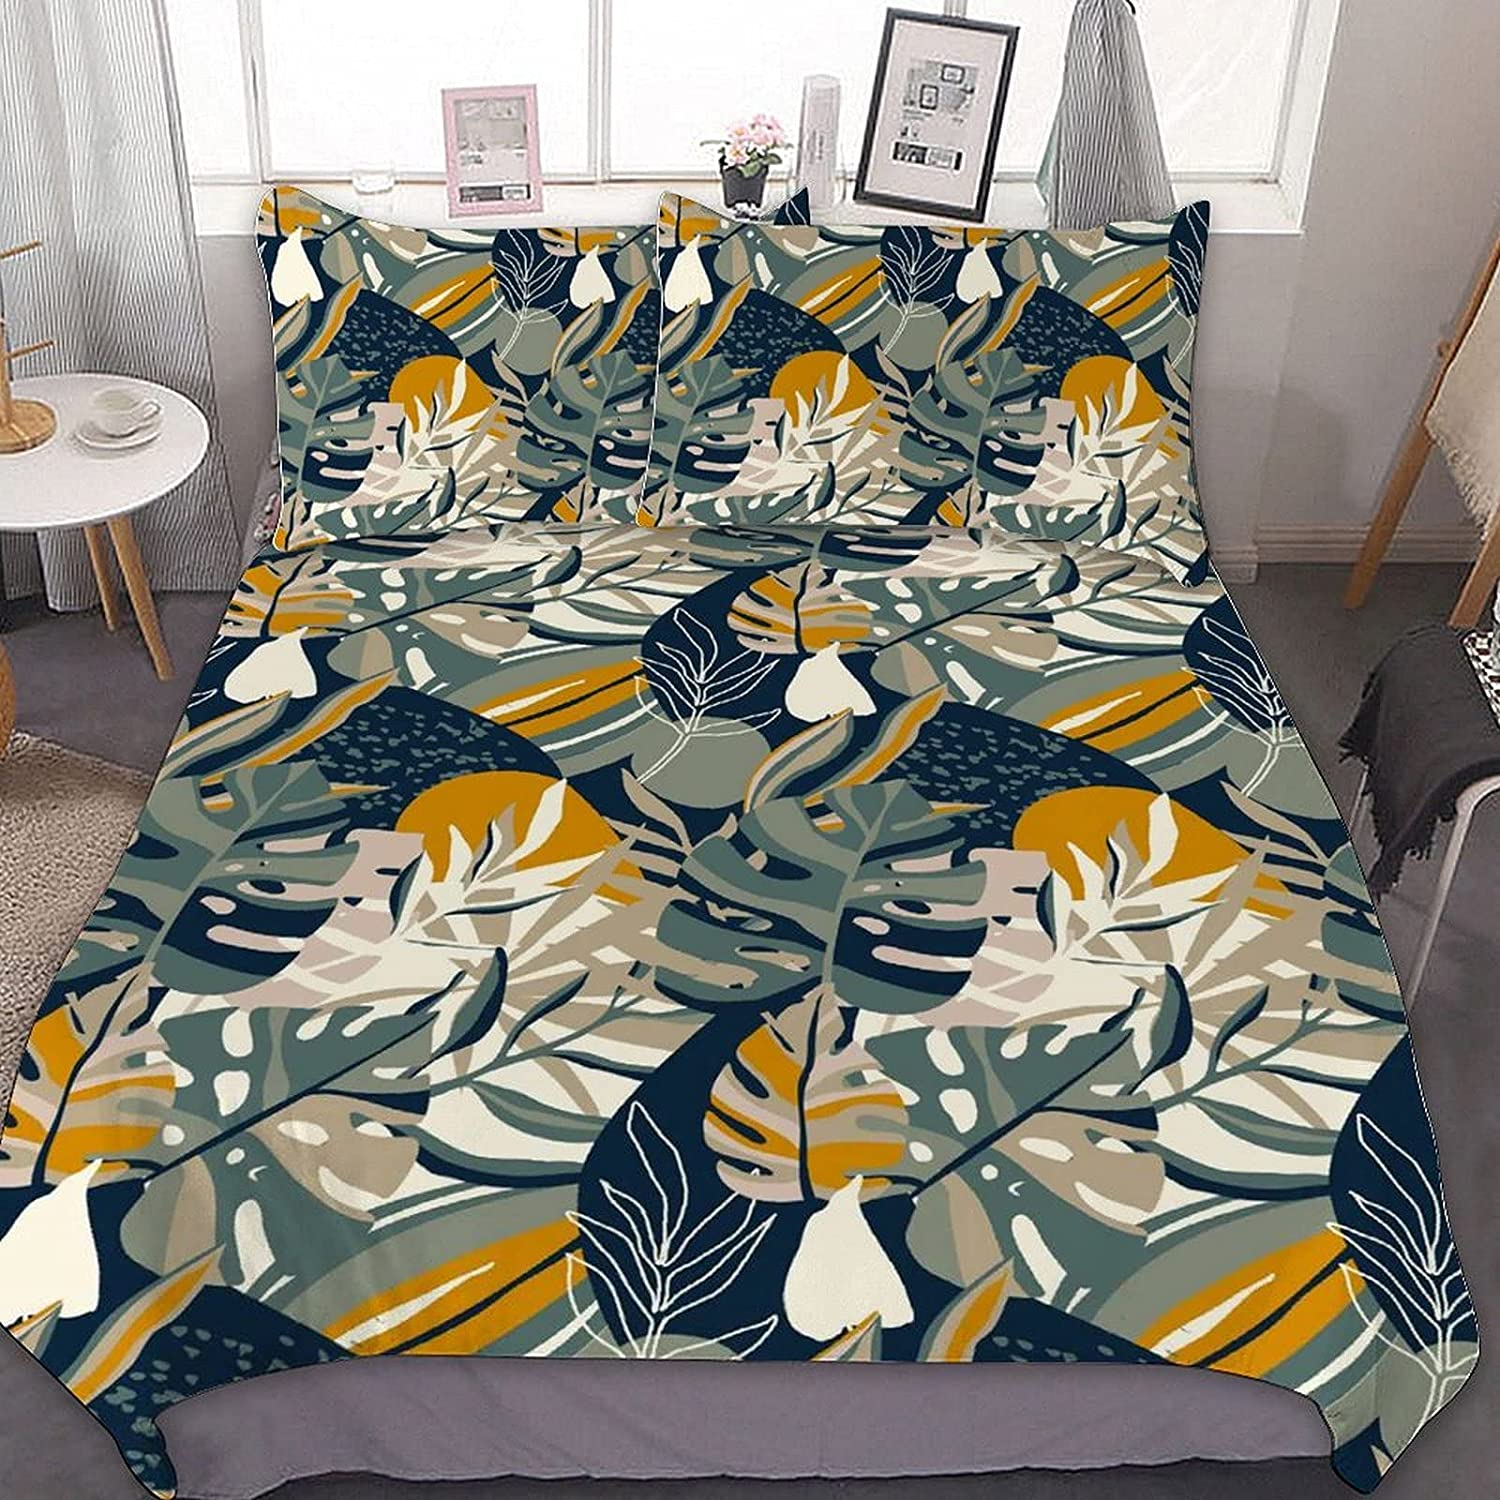 3 Pieces Duvet Long Beach Mall 40% OFF Cheap Sale Cover Set with Summers Comforter and Zipper